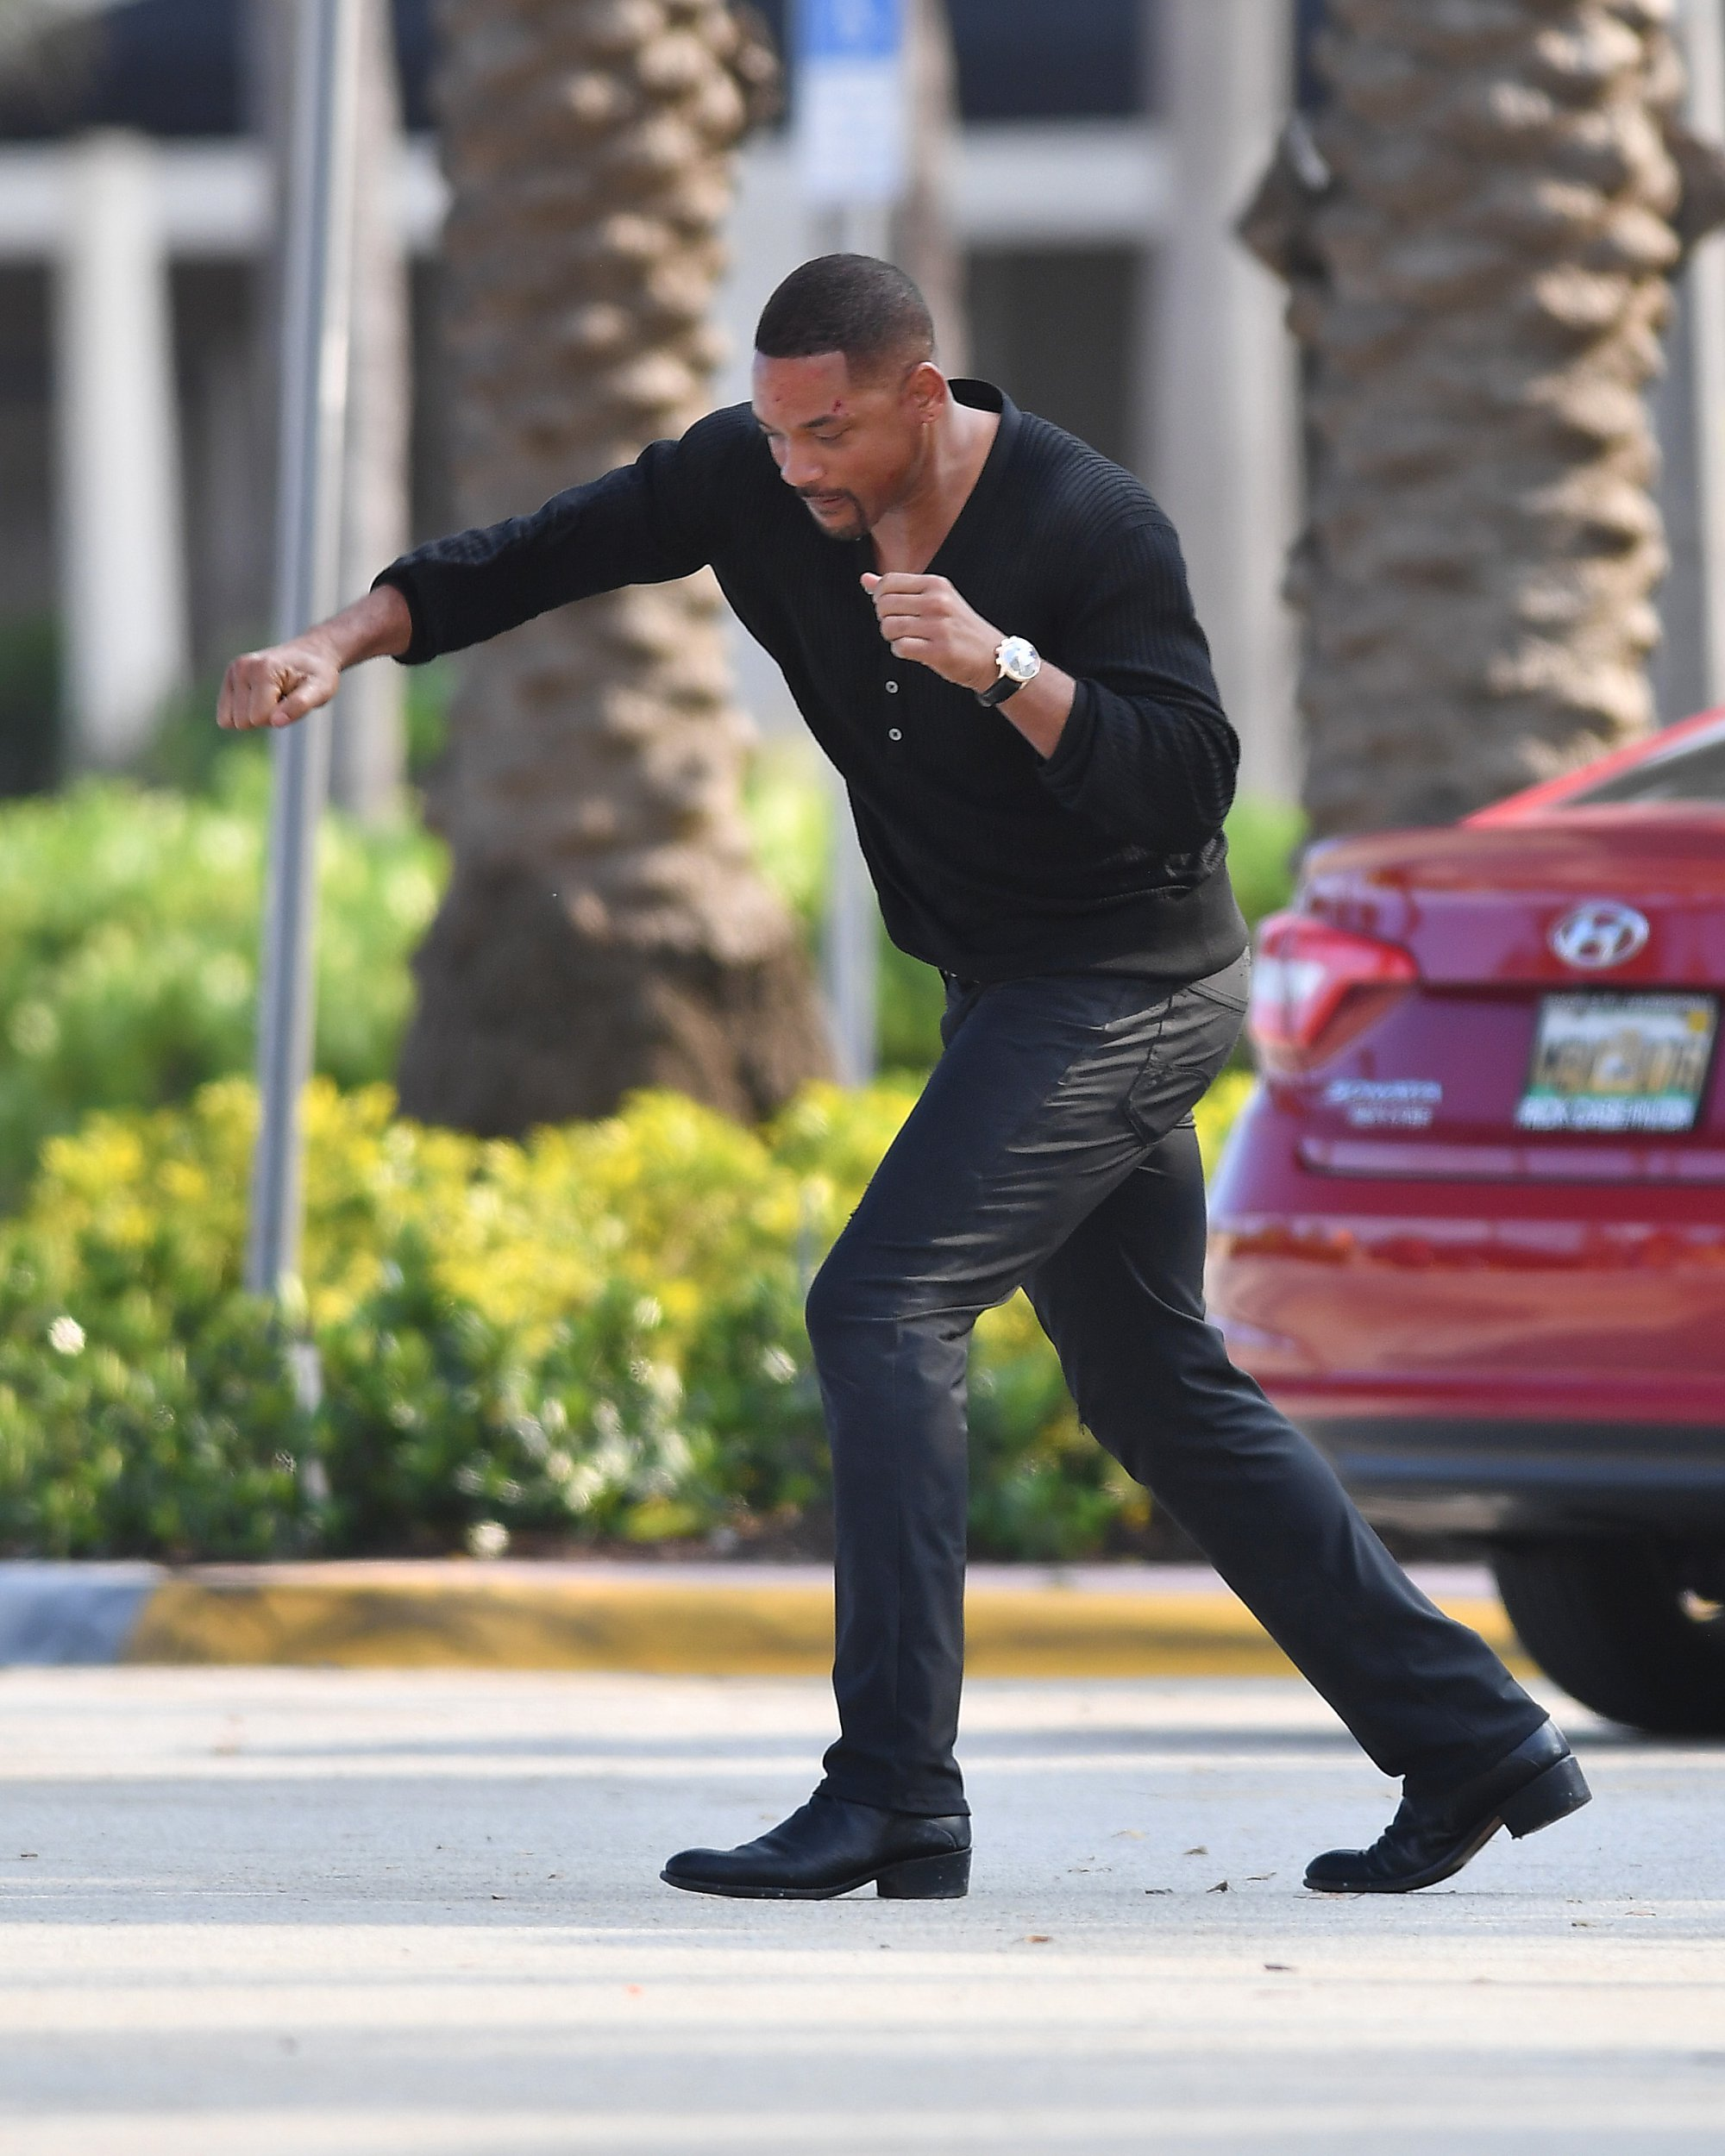 Will Smith seen doing pushups and boxing on set of Bad Boys 3 in Miami Beach,Florida Pictured: Will Smith Ref: SPL5076945 030419 NON-EXCLUSIVE Picture by: Robert O'neil / SplashNews.com Splash News and Pictures Los Angeles: 310-821-2666 New York: 212-619-2666 London: 0207 644 7656 Milan: 02 4399 8577 photodesk@splashnews.com World Rights,